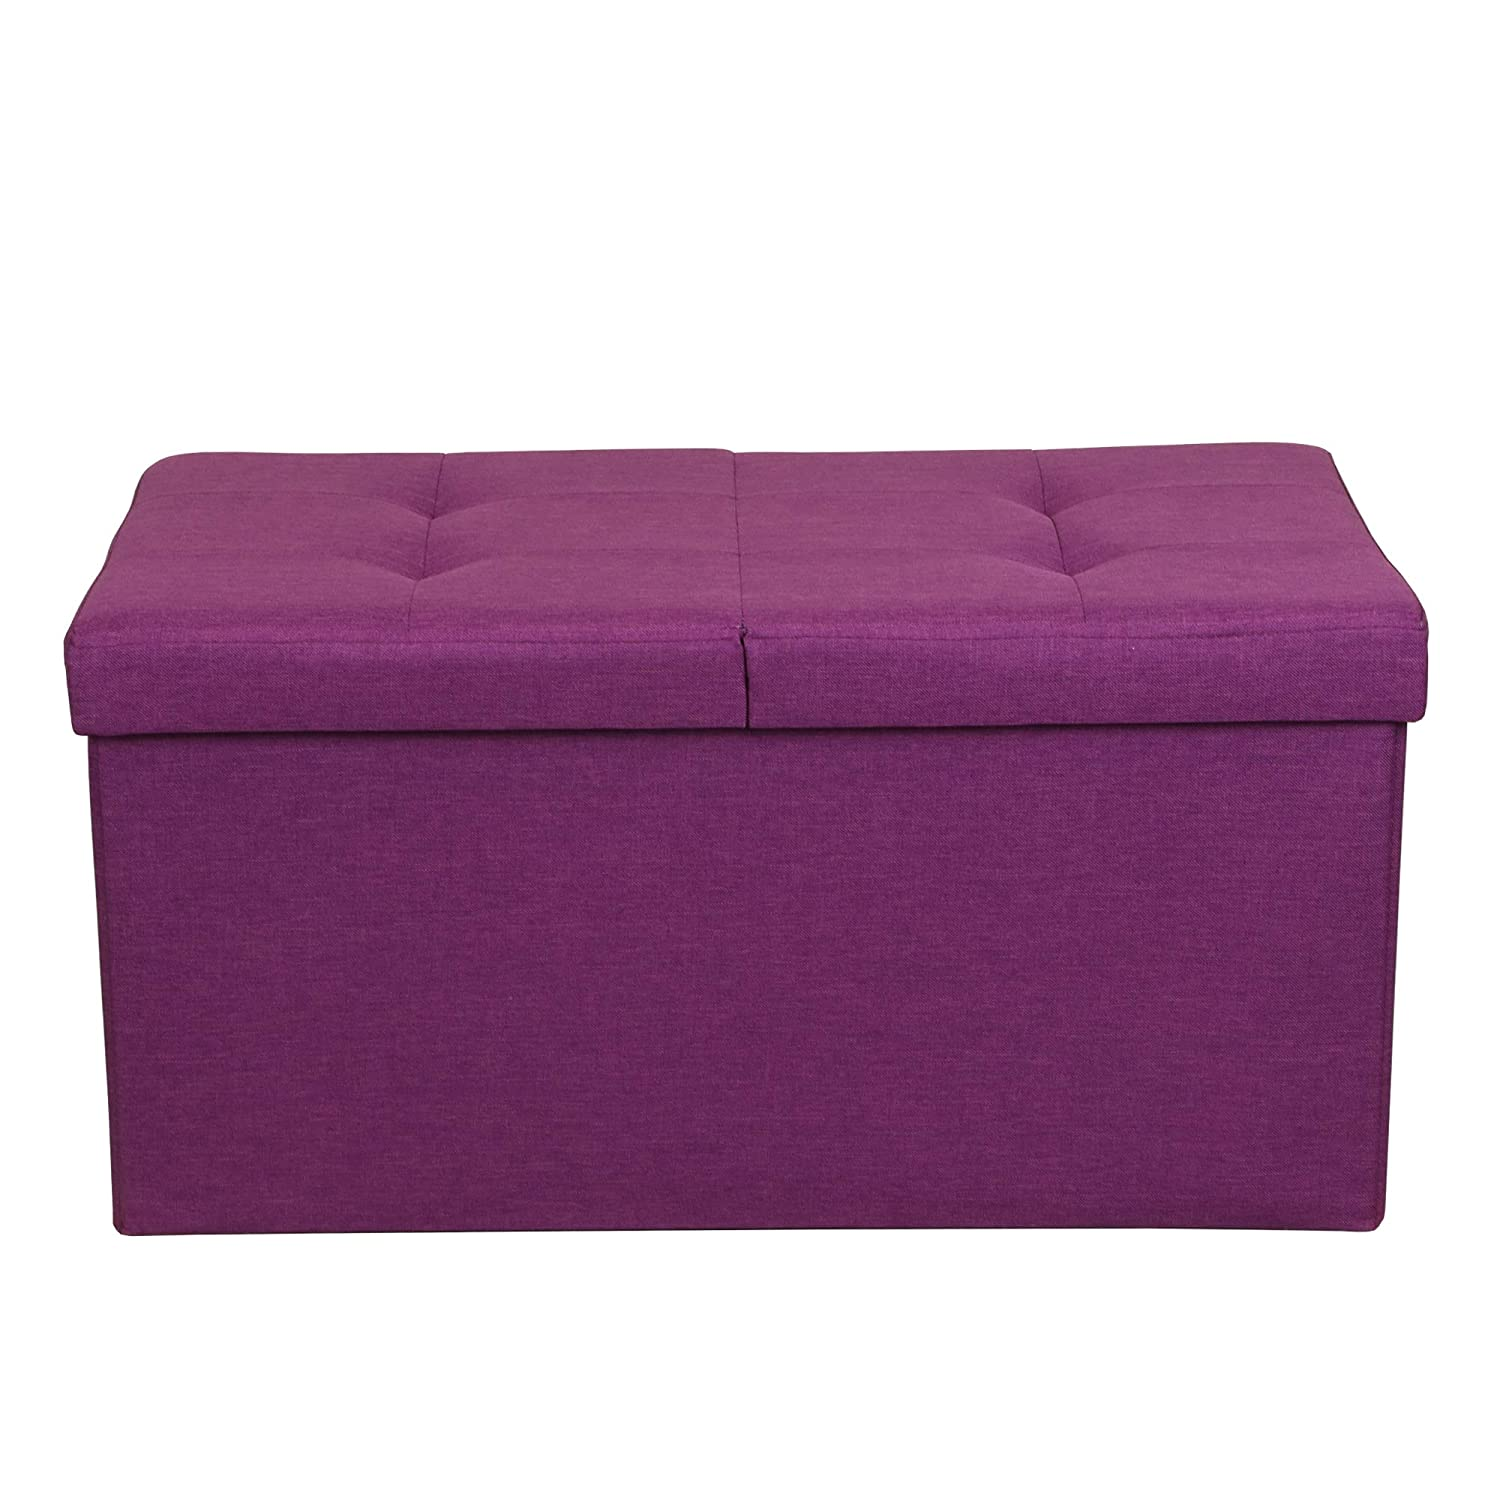 Otto Ben 30 Storage Ottoman – Folding Toy Box Chest with SMART LIFT Top, Upholstered Tufted Ottomans Bench Foot Rest for Bedroom, Orchid Purple